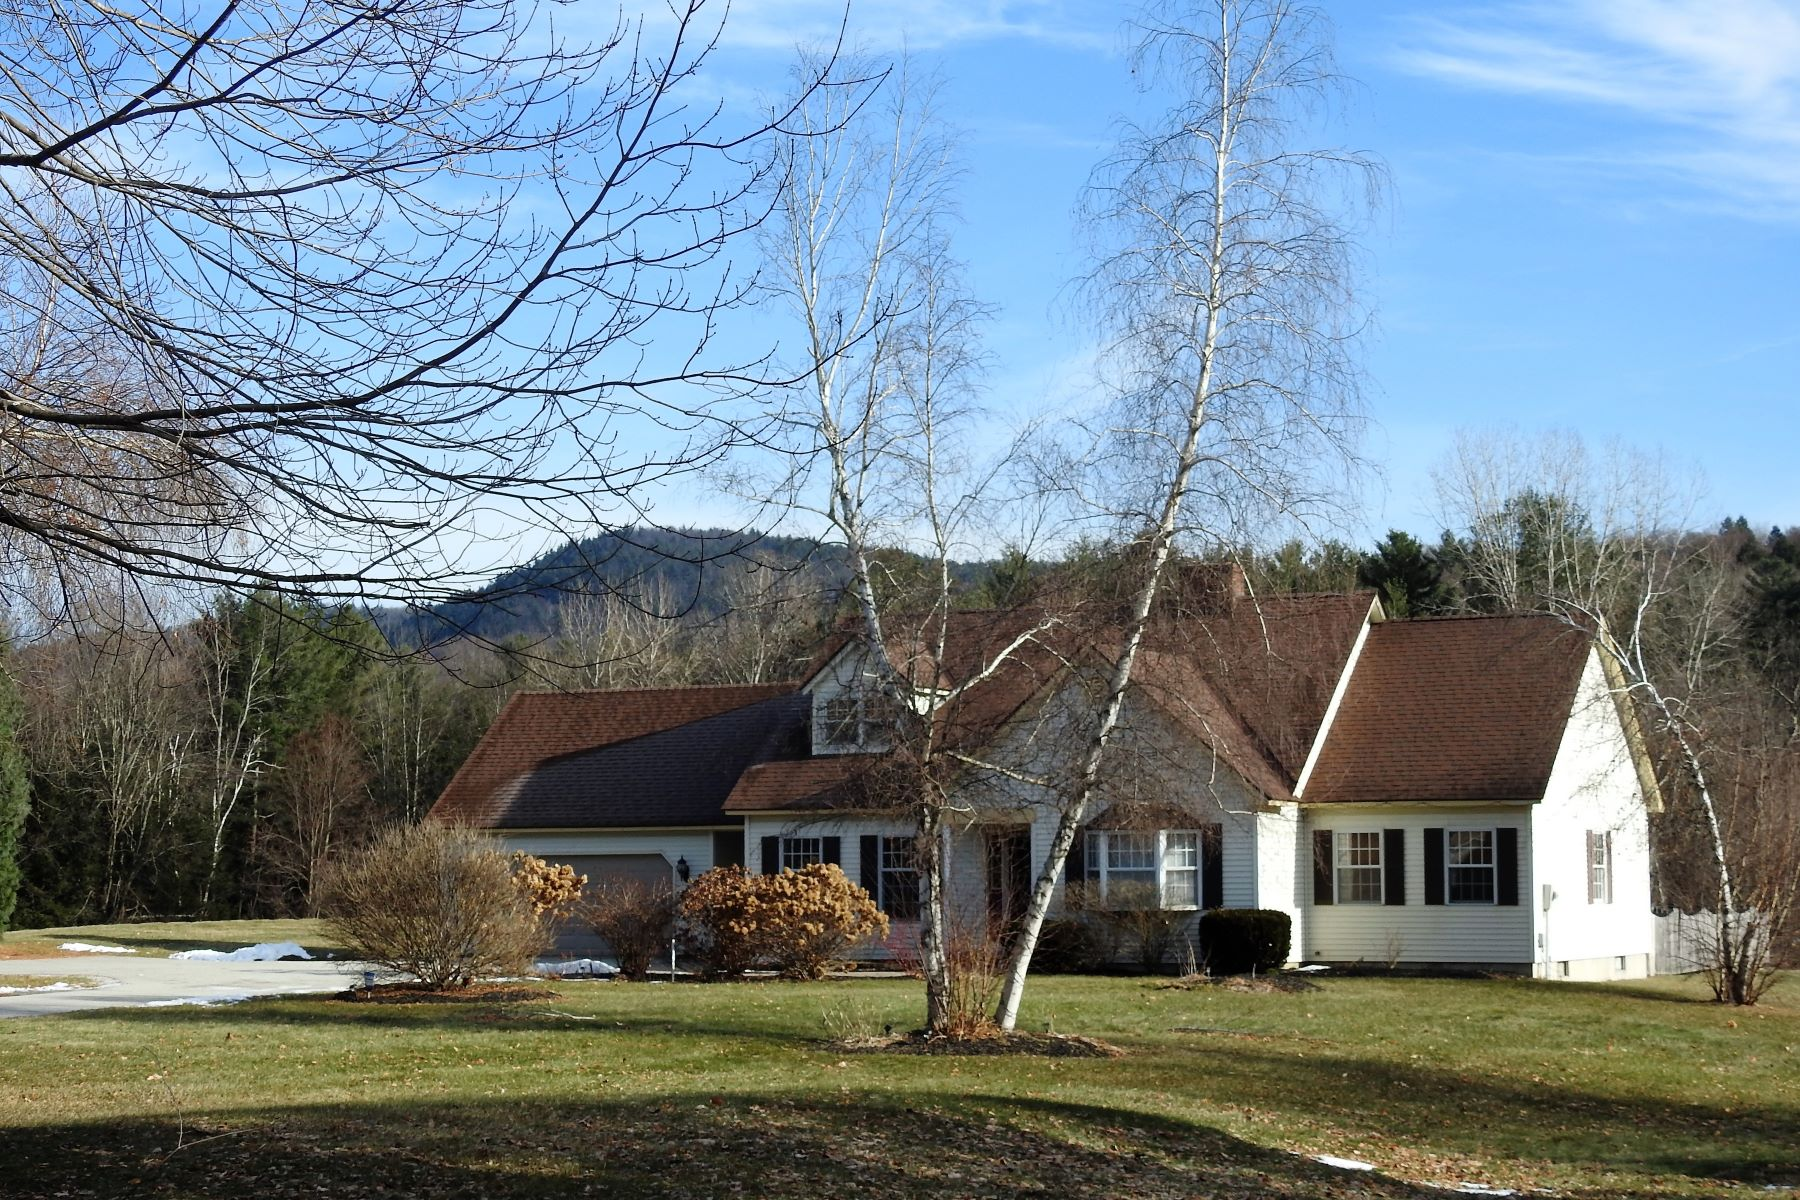 Single Family Home for Sale at Convenient and Spacious 106 Cheney Hill Ln Rutland Town, Vermont 05701 United States